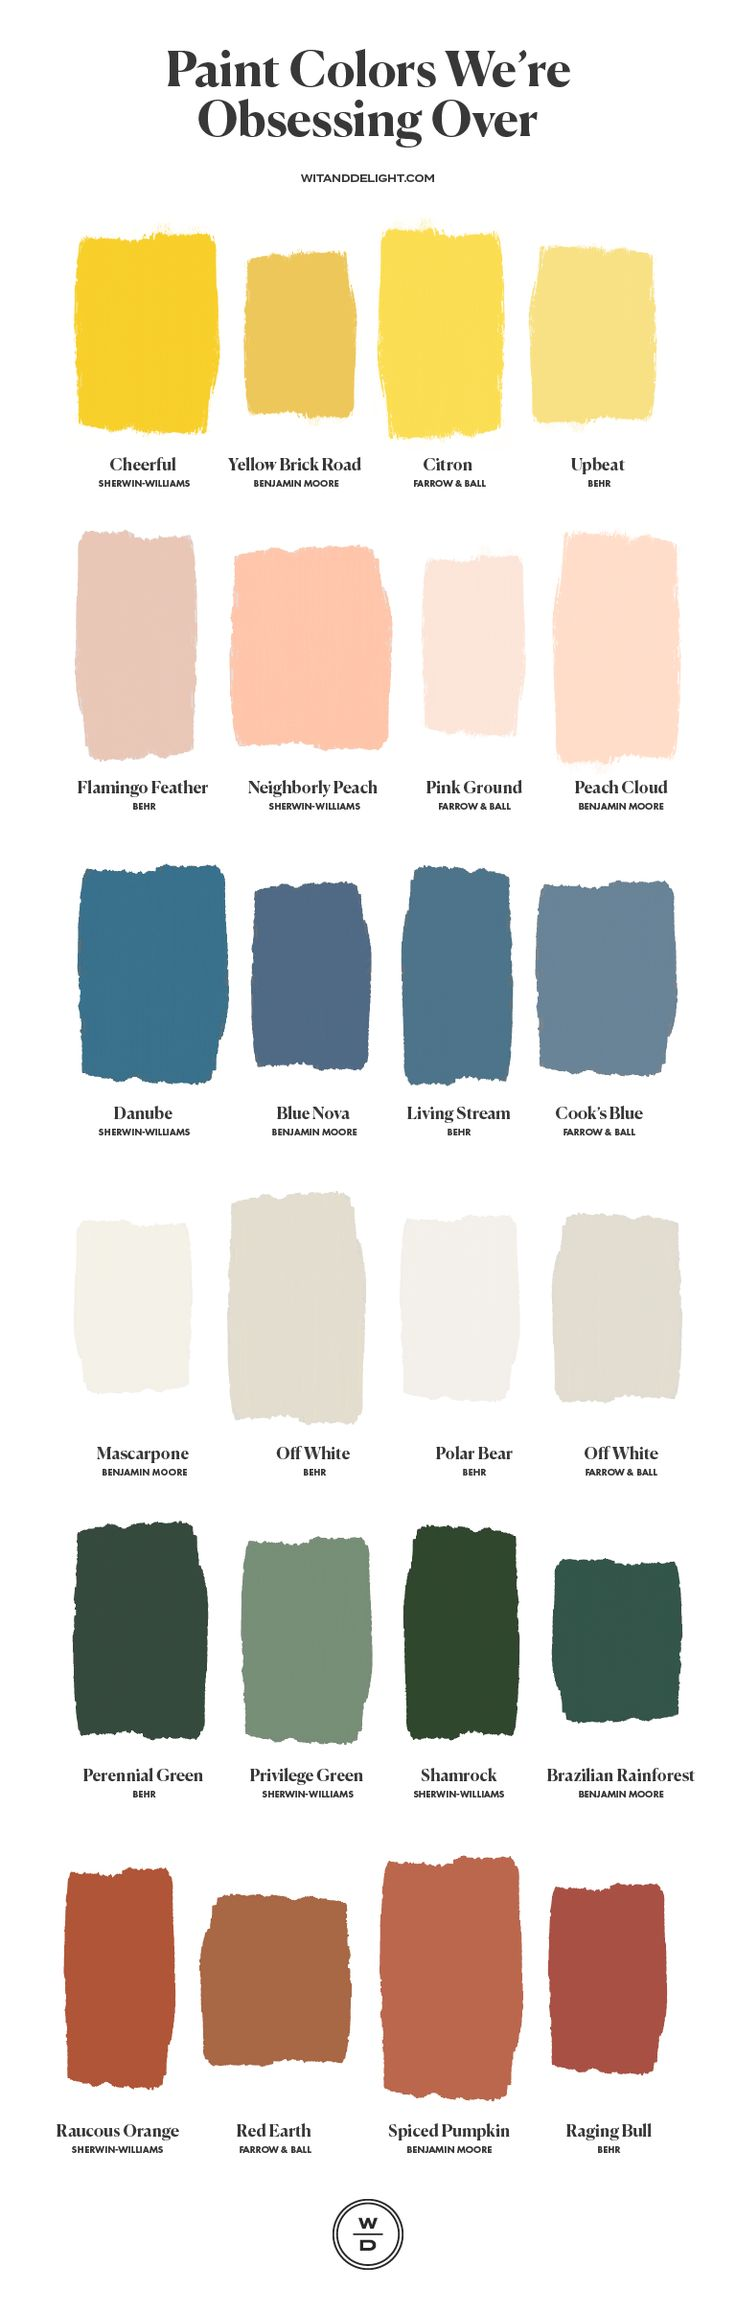 These are the 6 Paint Colors We're Obsessing Over – Wit & Delight interior paint